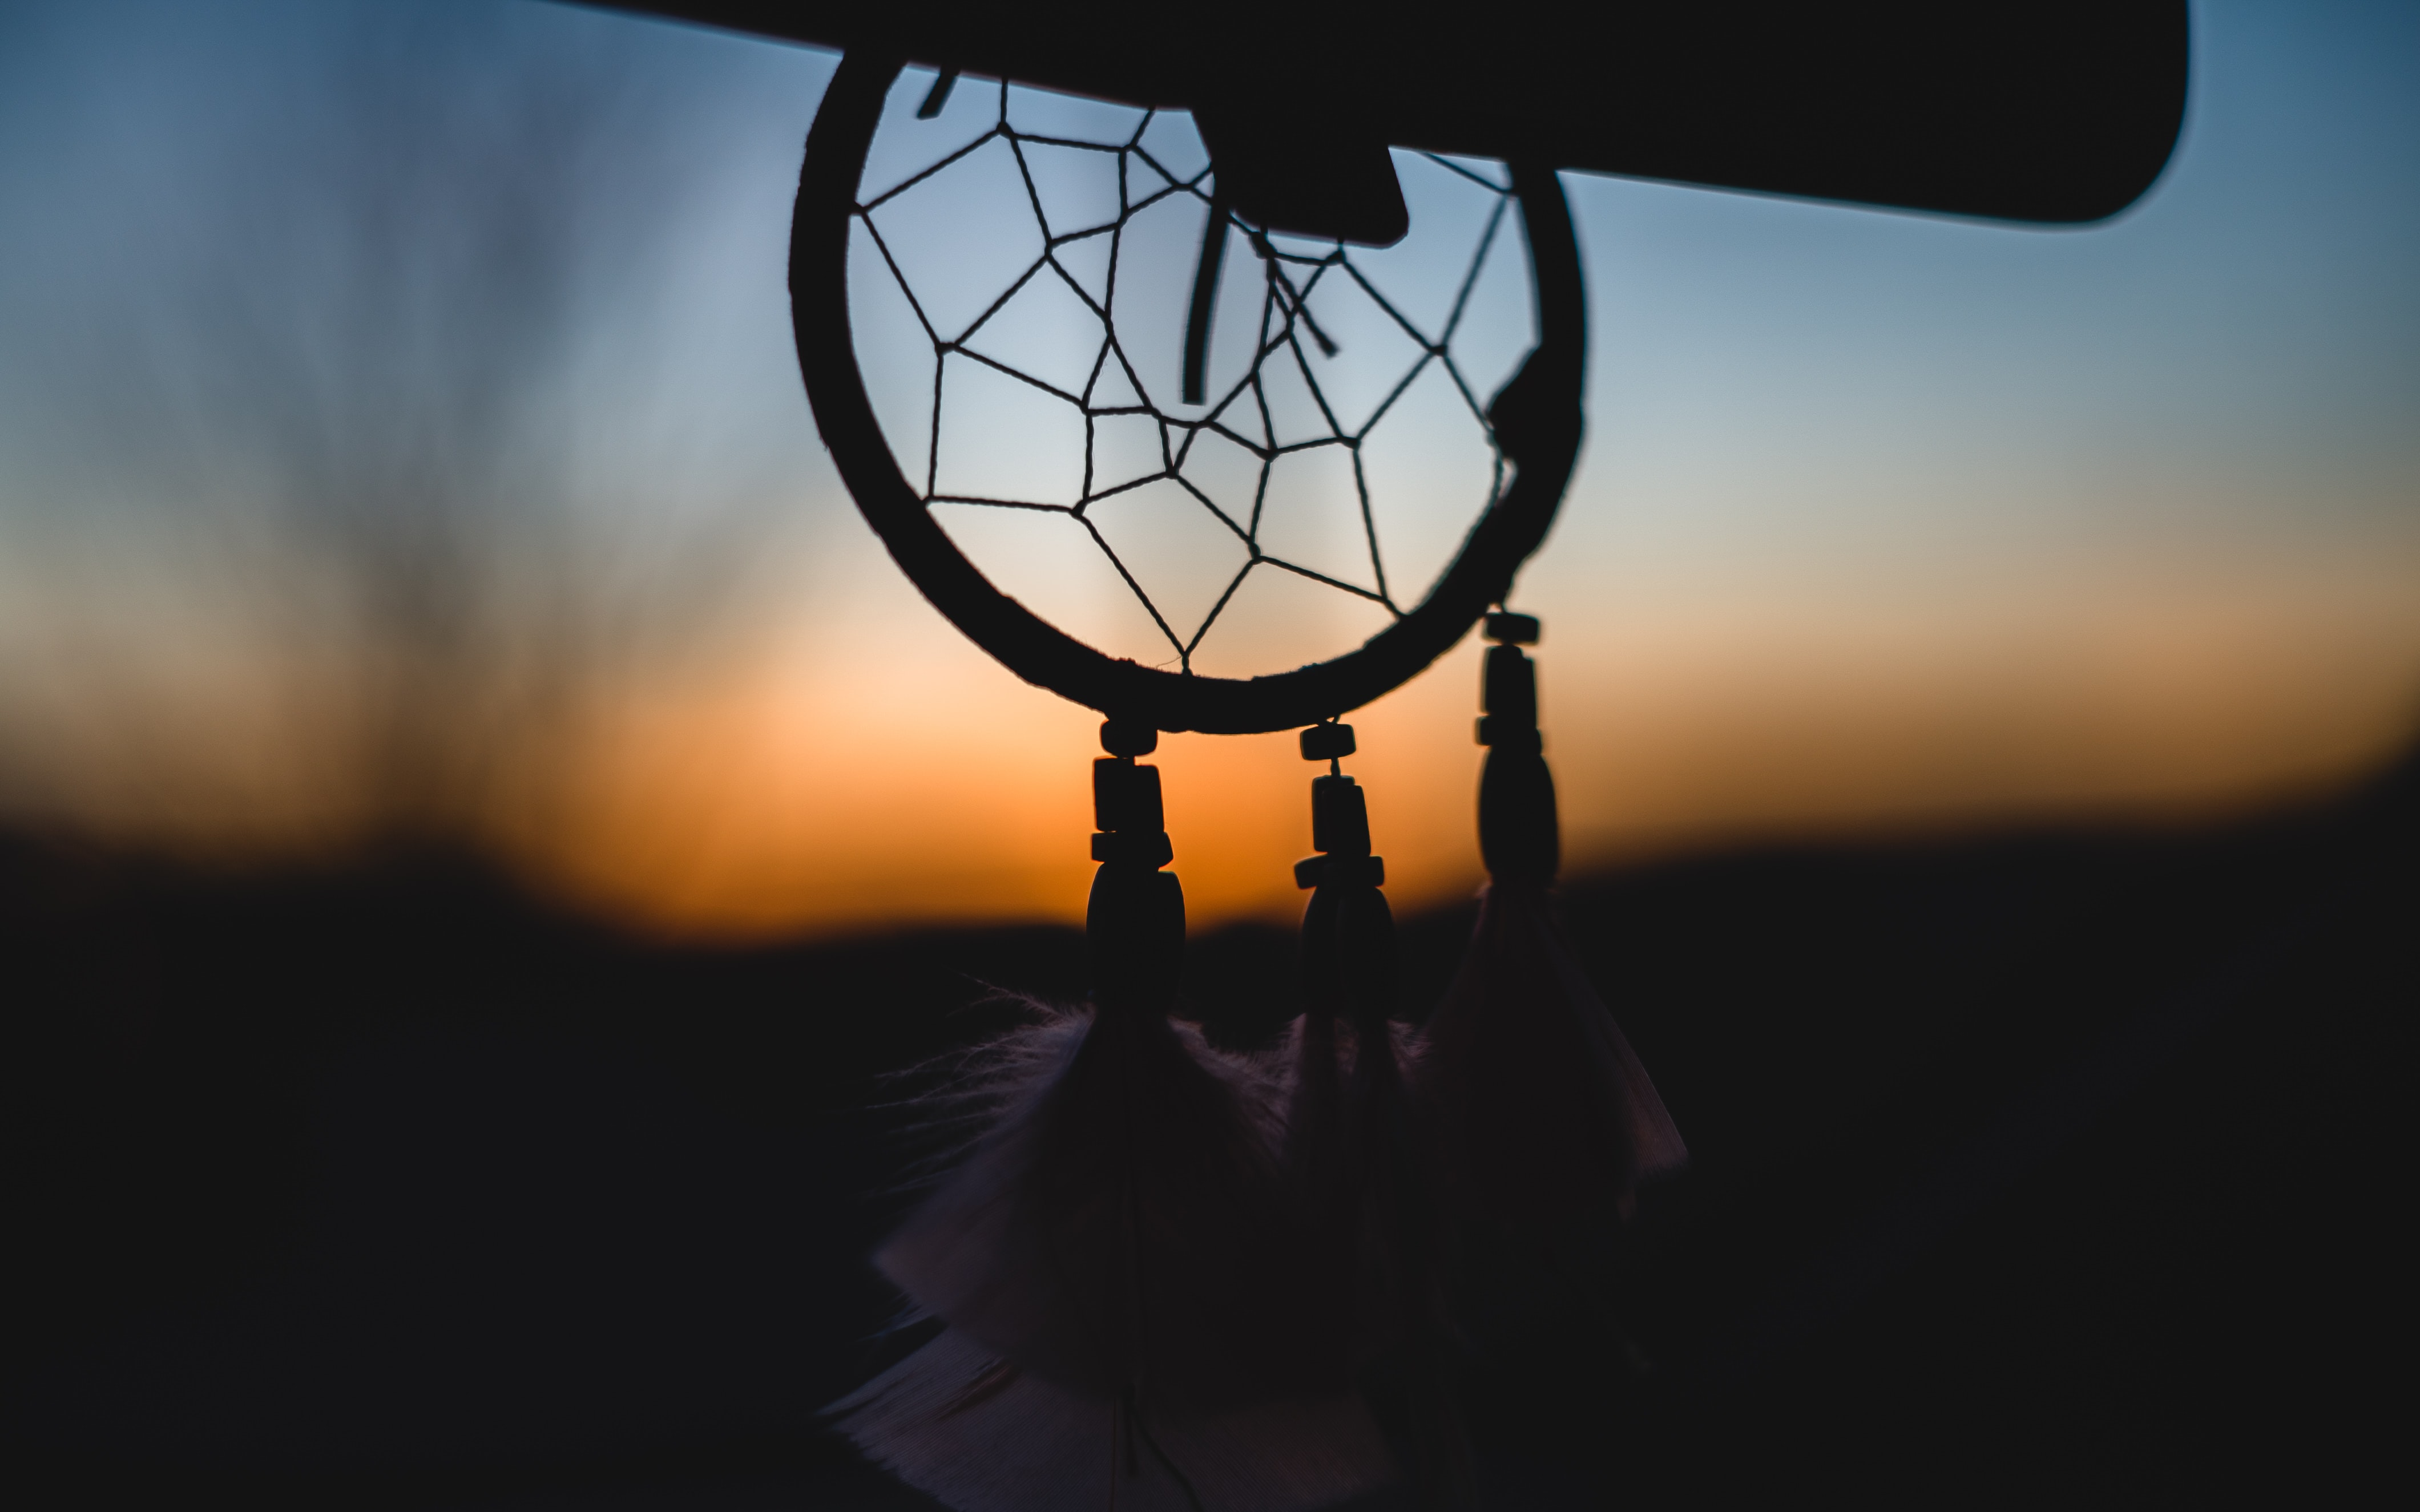 silhouette of dream catcher